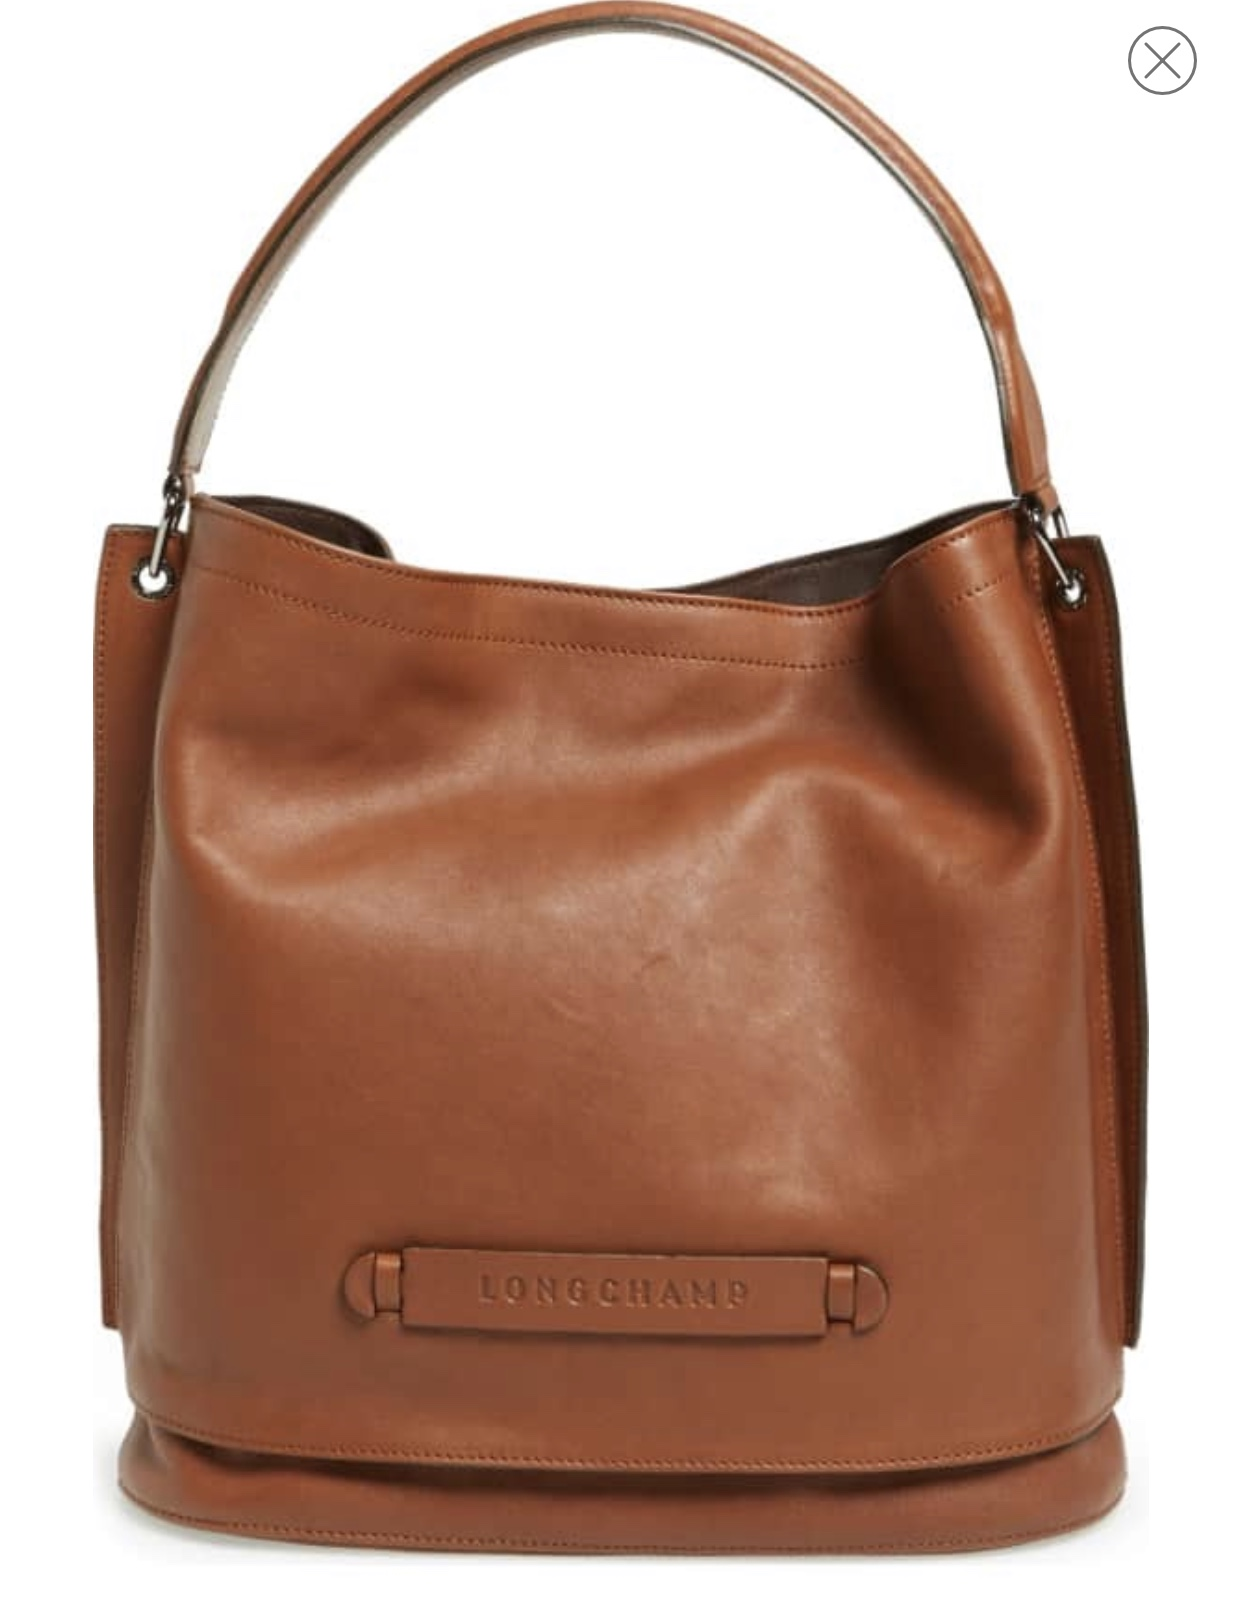 Longchamp 3D Leather Hobo- Cognac